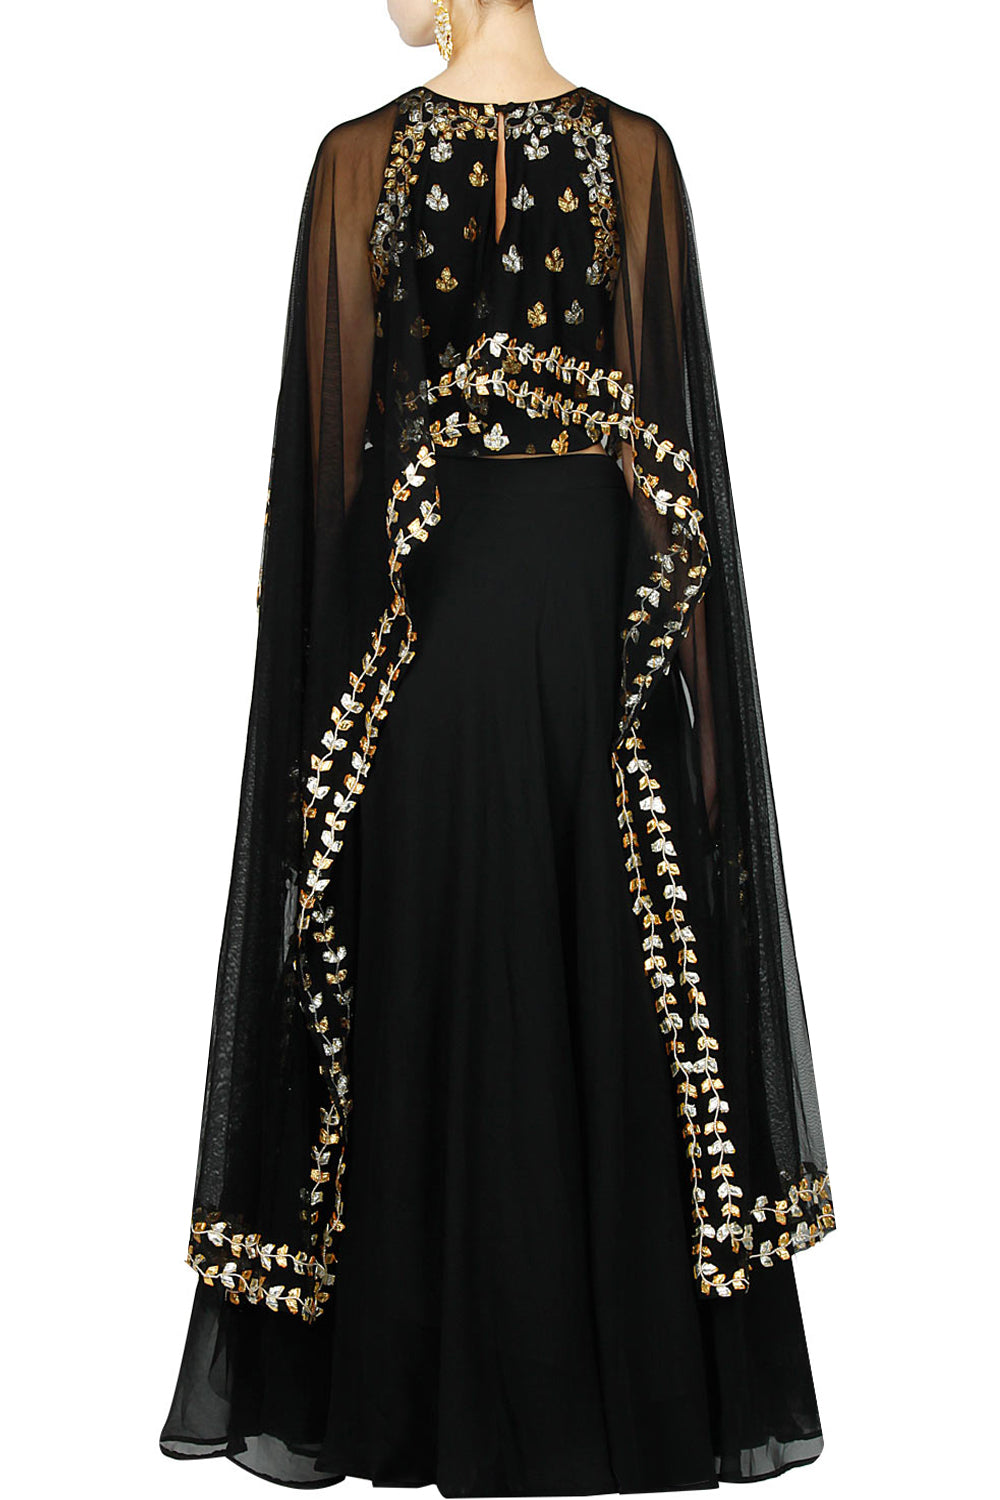 Black gota pati lengha set - The Grand Trunk